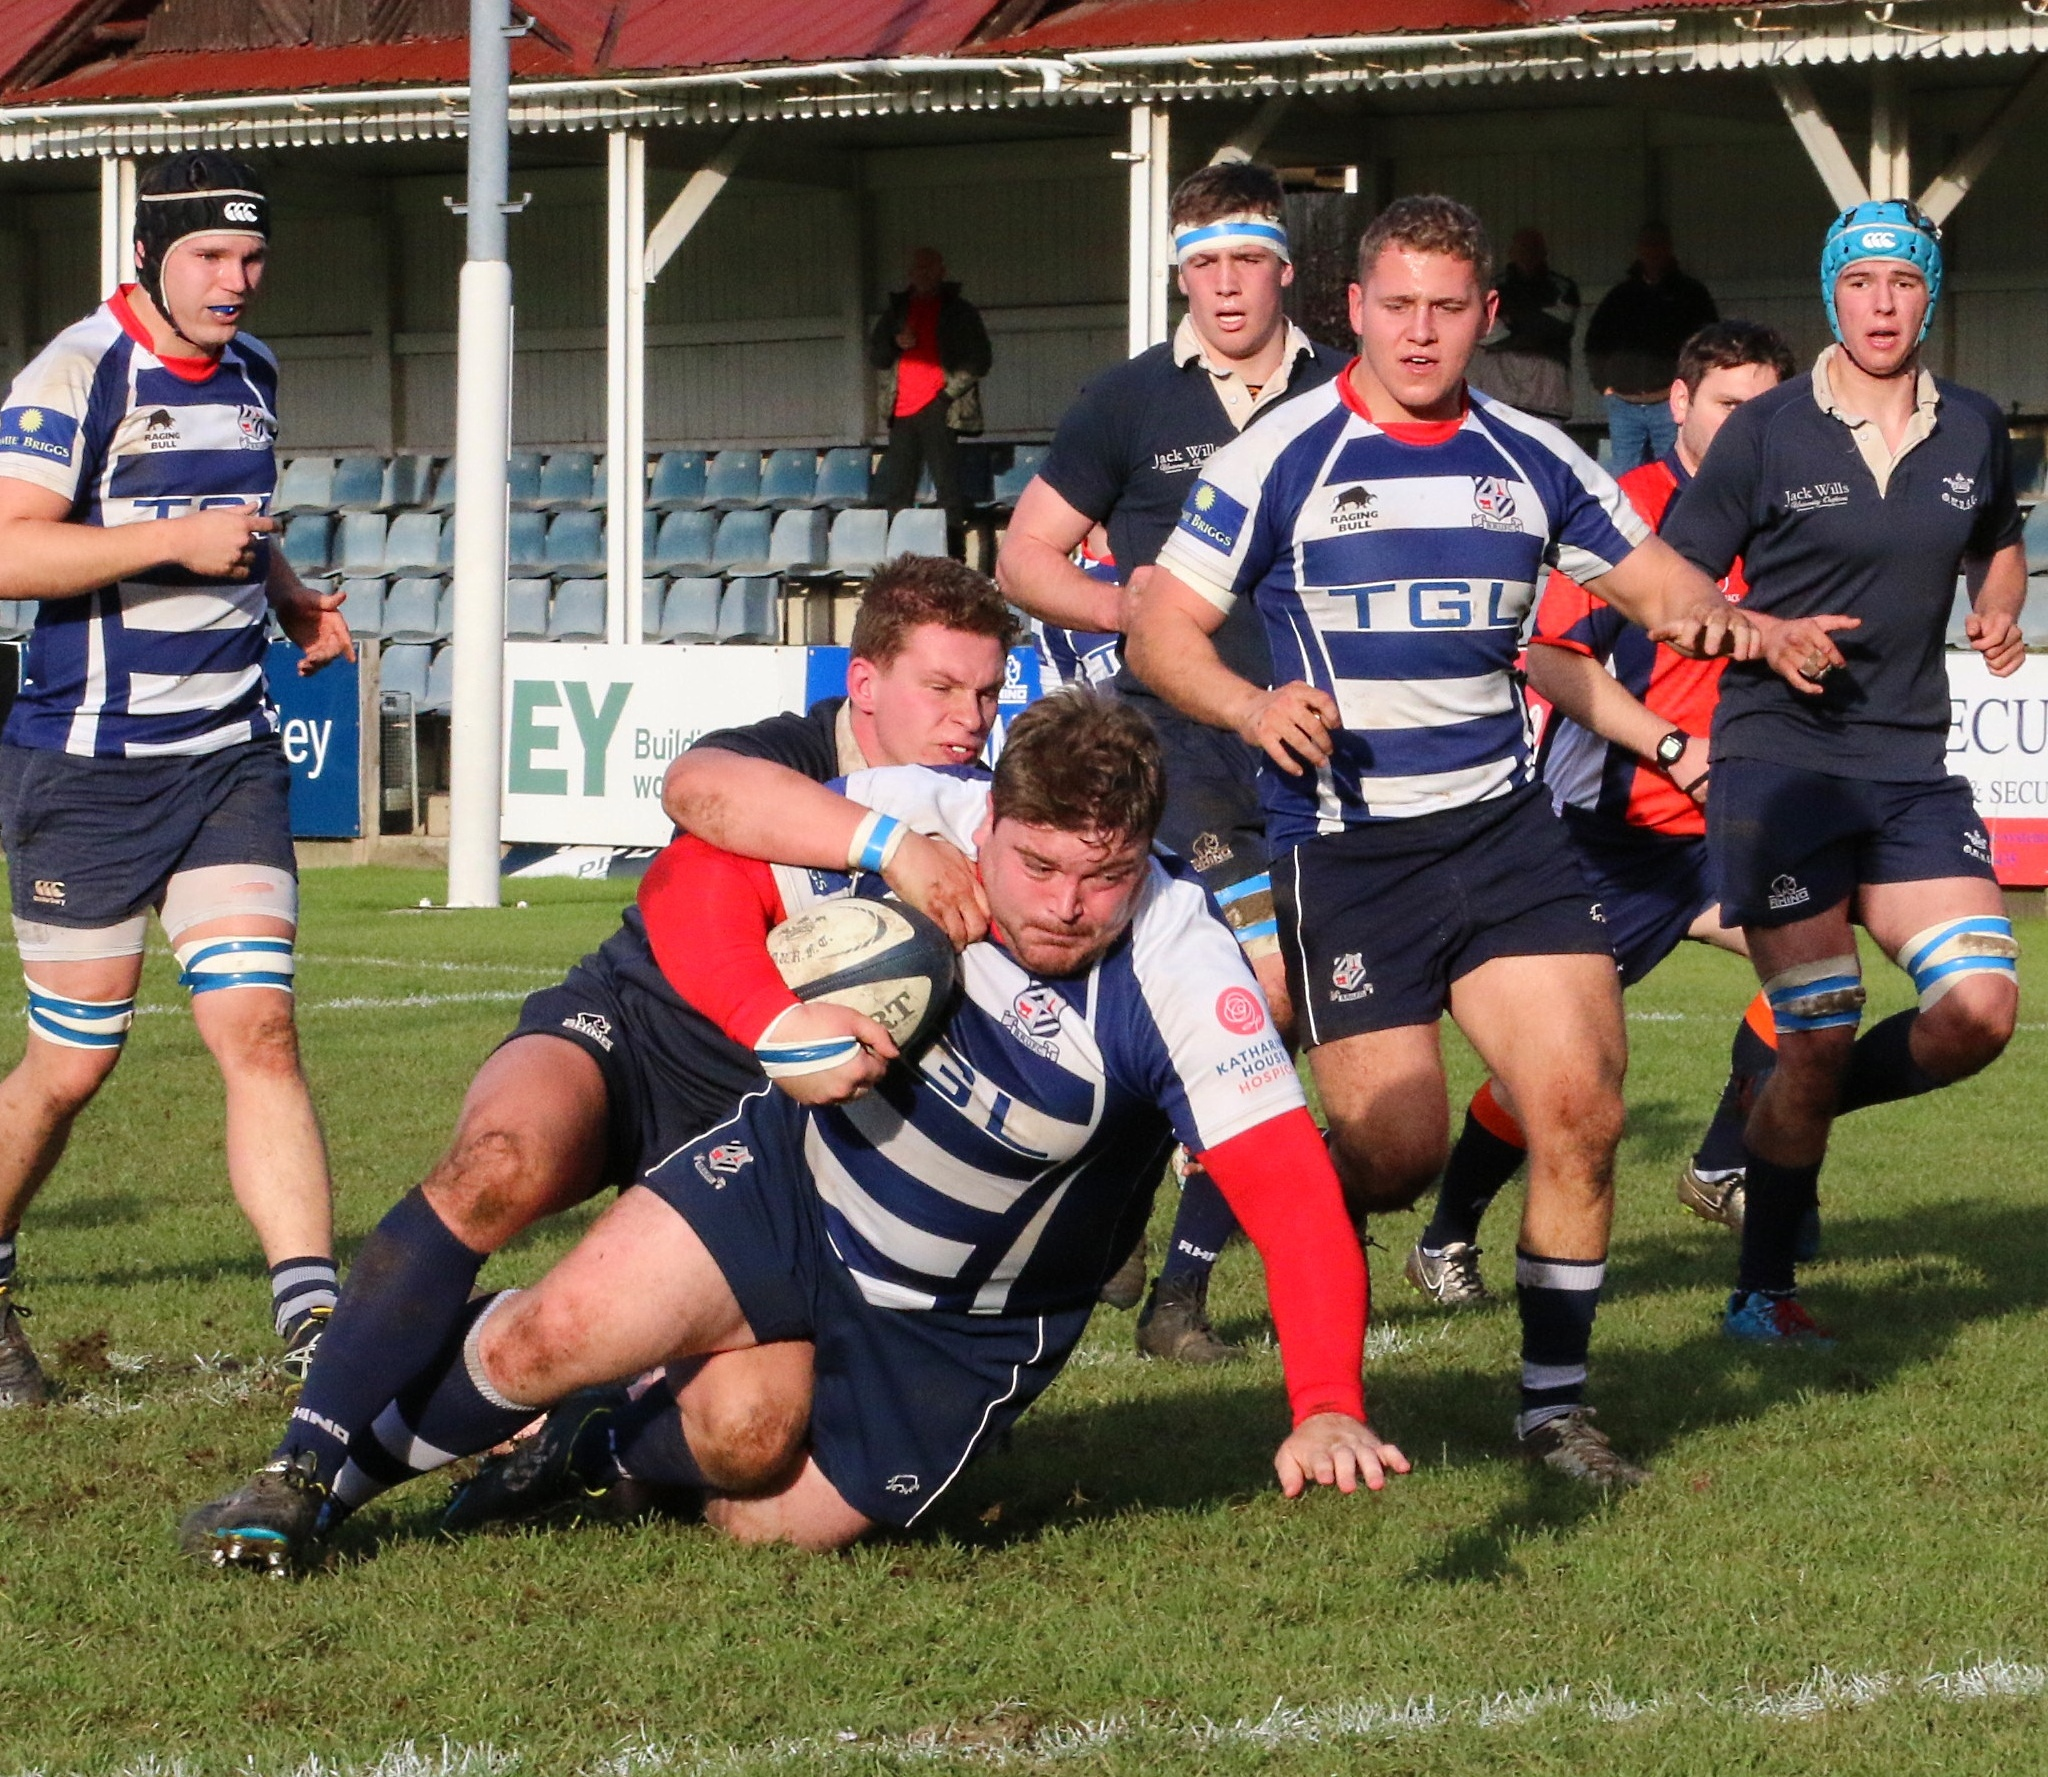 Pete Boulton scores one of his two tries try for Banbury against Oxford University Greyhounds in the Oxfordshire Cup